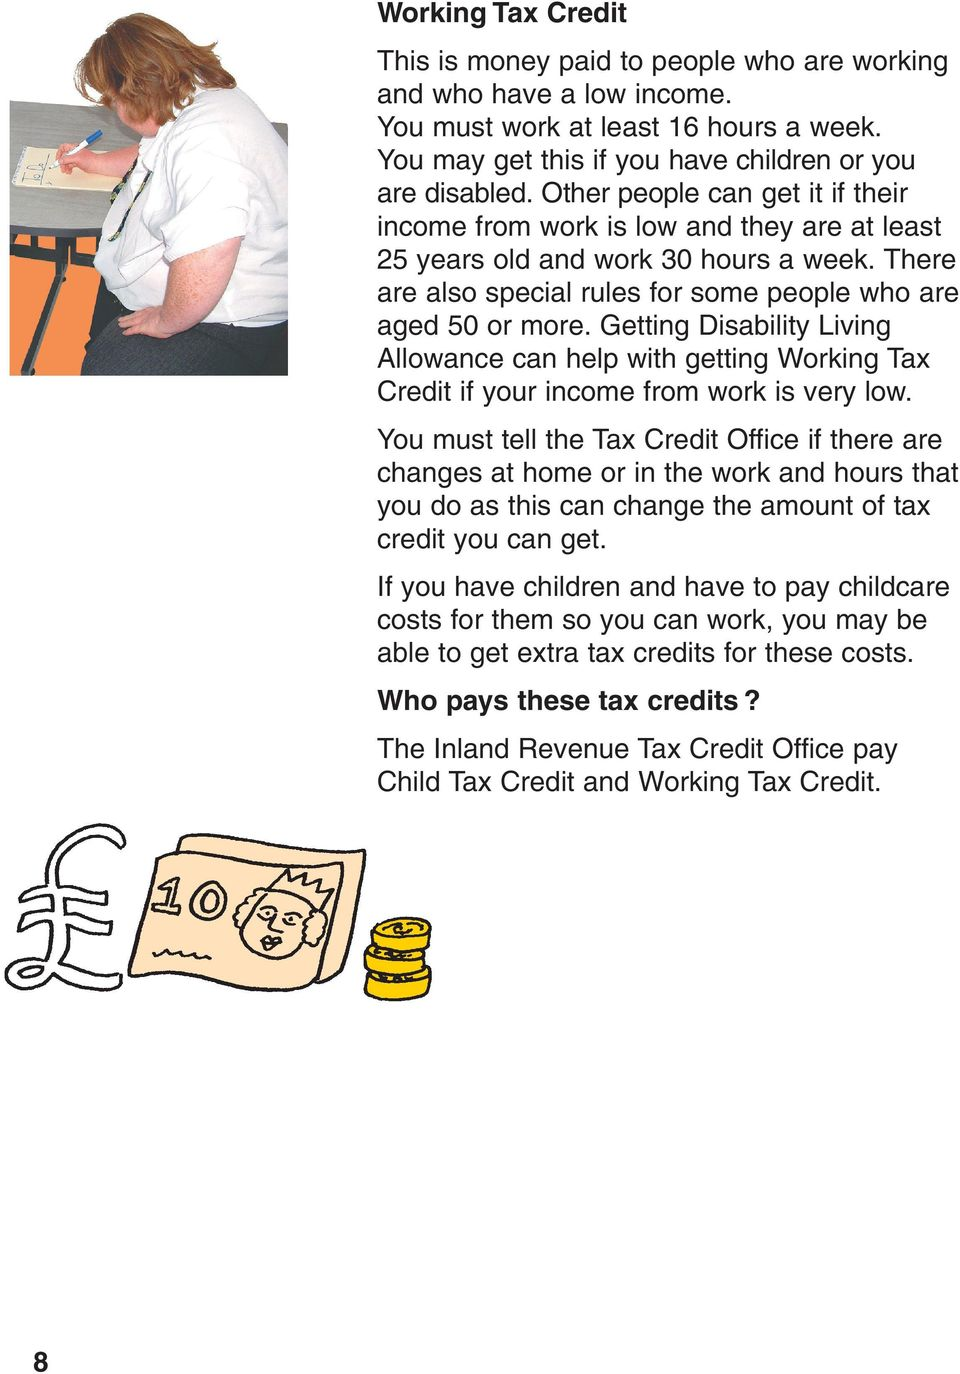 Getting Disability Living Allowance can help with getting Working Tax Credit if your income from work is very low.